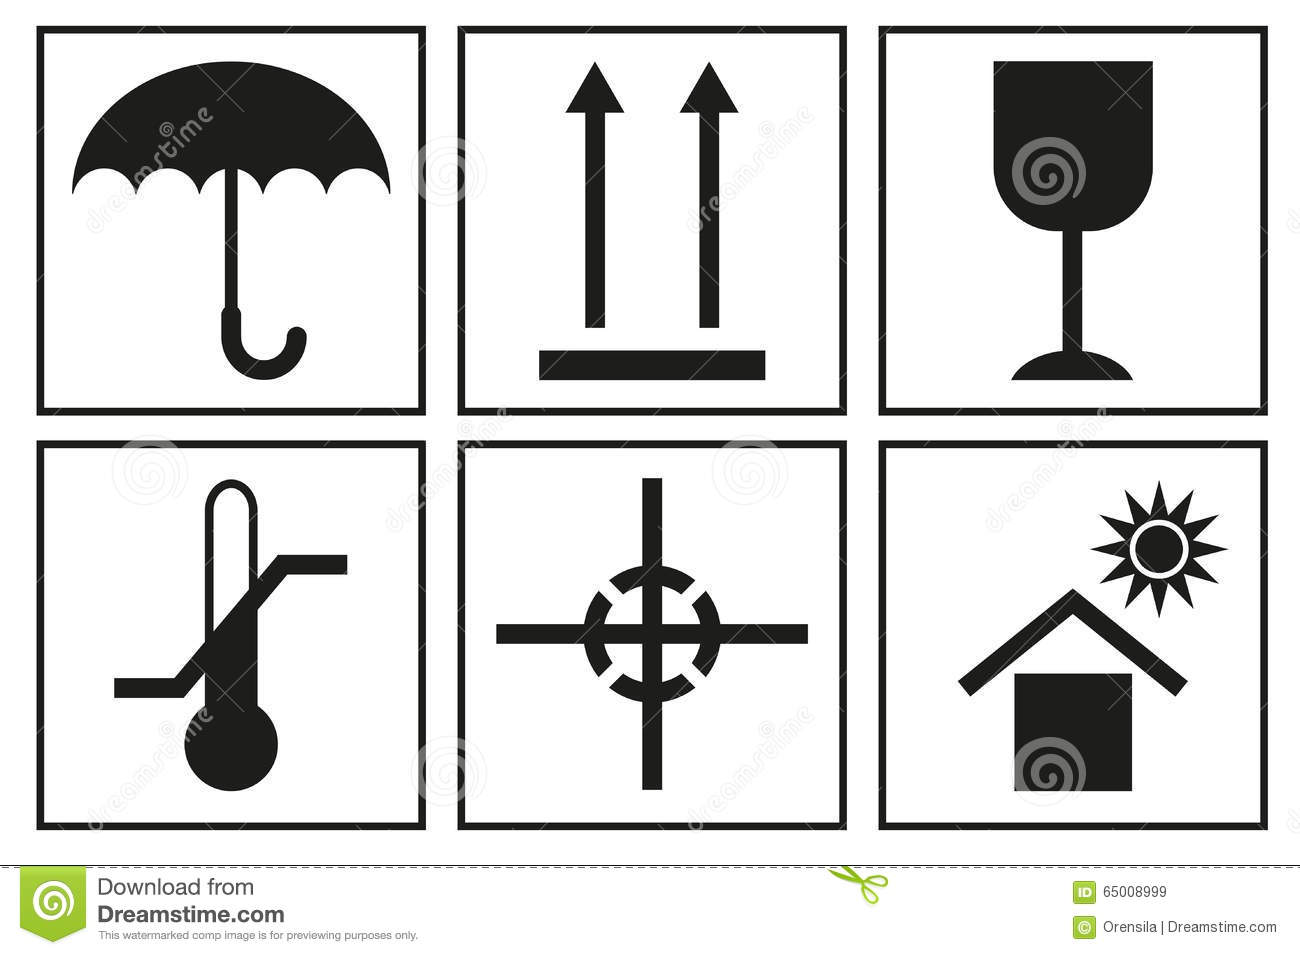 Packaging box symbols stock illustration illustration of transport signs on packaging logistic icon for box packaging box symbols royalty free stock images biocorpaavc Choice Image